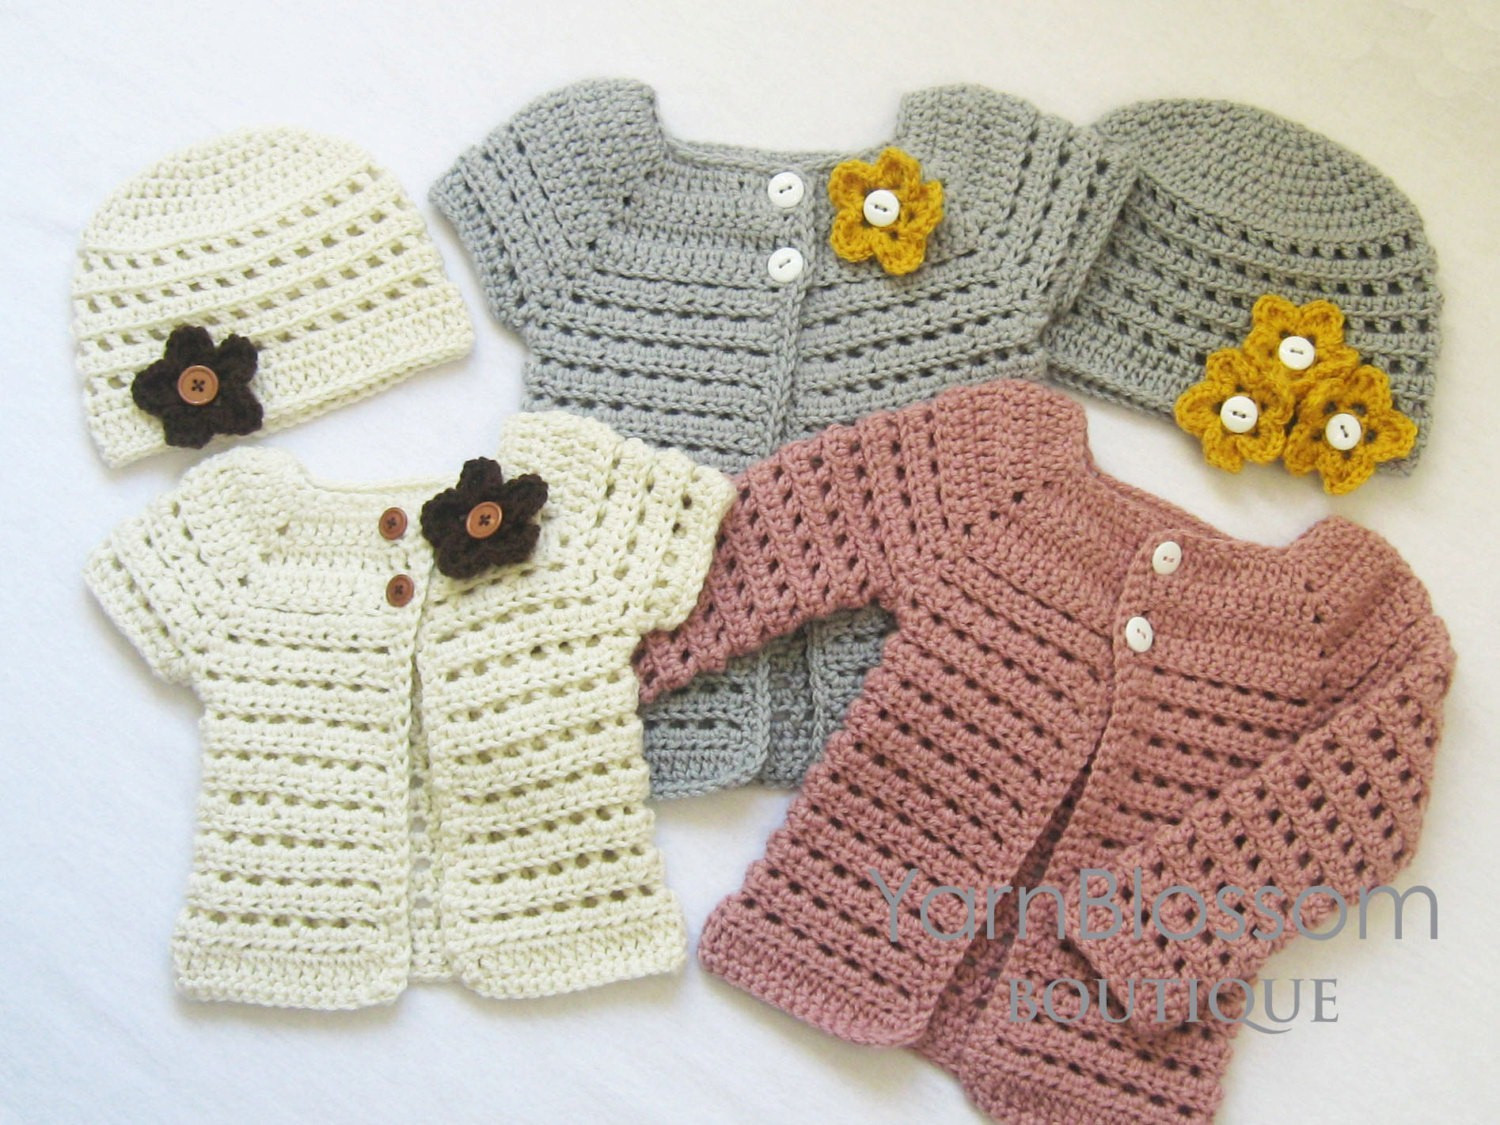 Unique Free Crochet Patterns for Baby Boy Clothes Free Crochet Patterns for toddlers Of Brilliant 47 Photos Free Crochet Patterns for toddlers